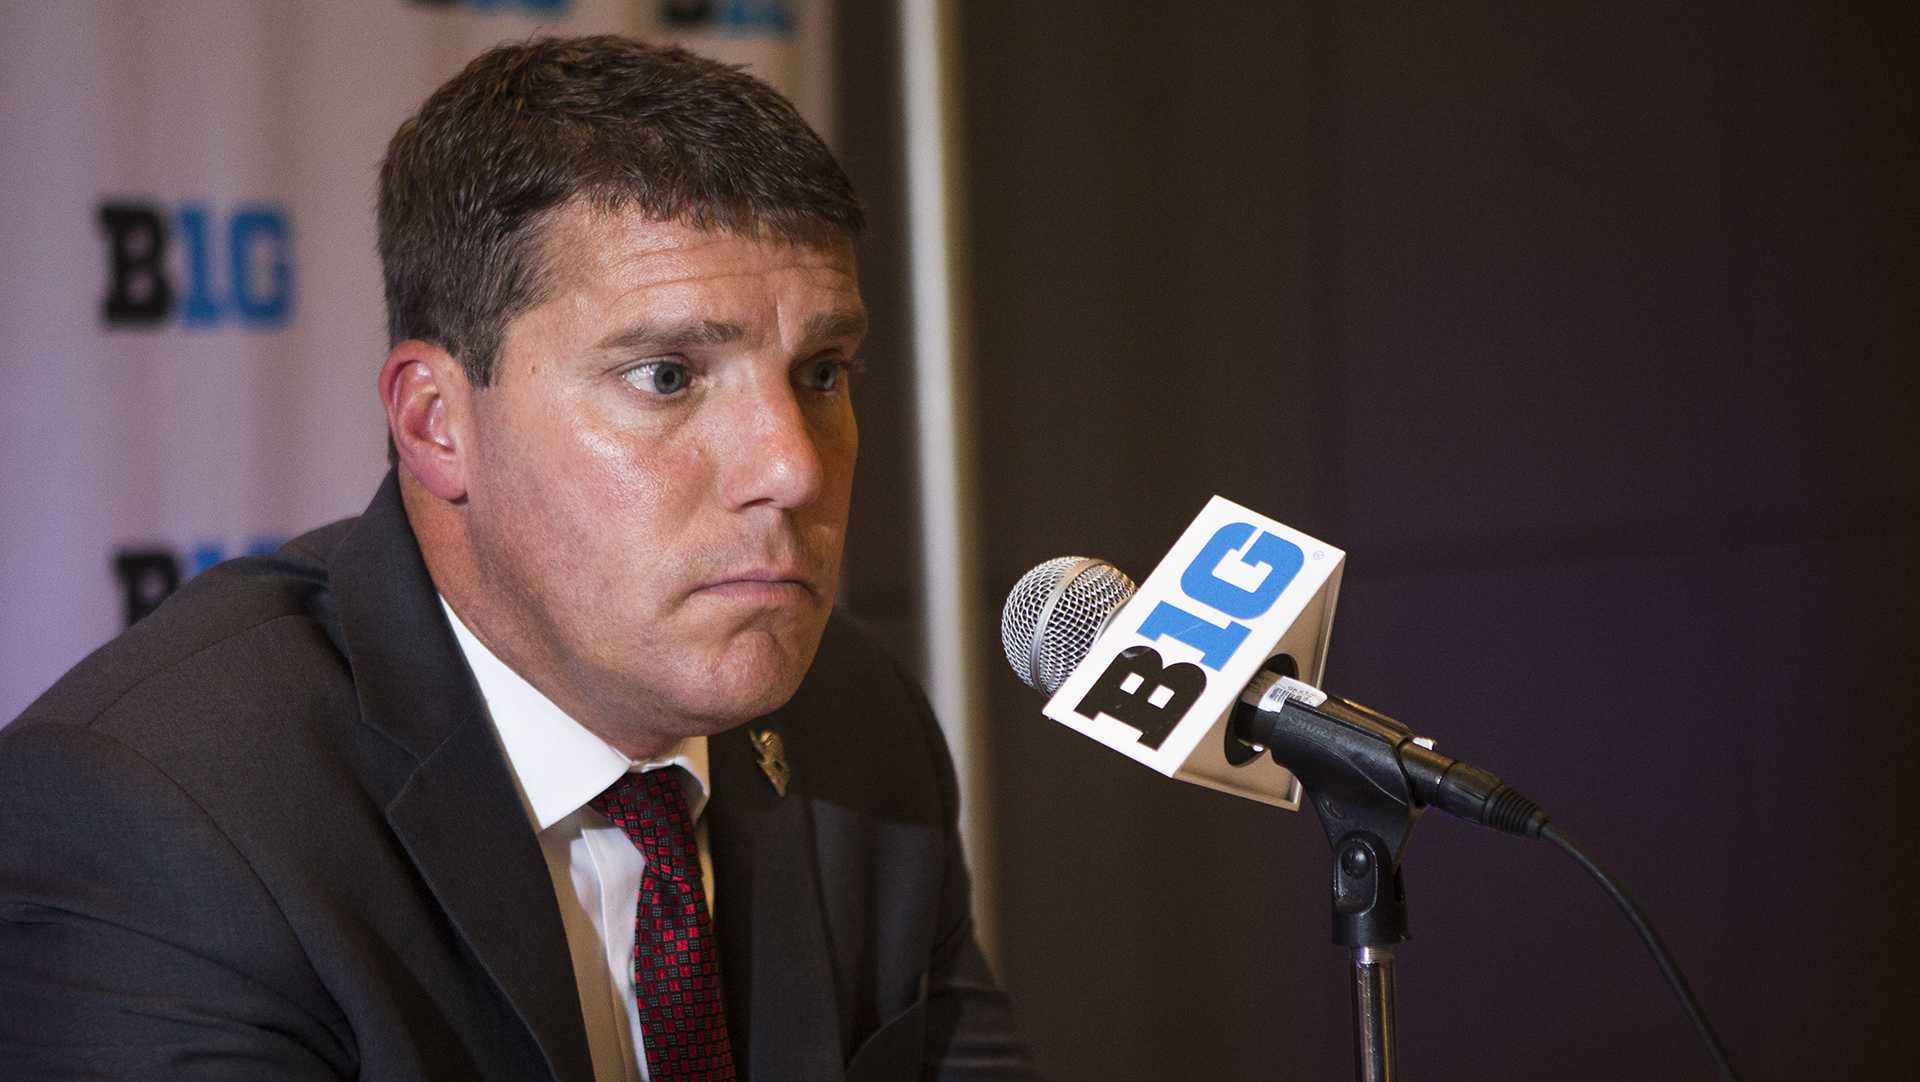 Rutgers head coach Chris Ash speaks with members of the media during the Big Ten Media Days at McCormick Place Convention Center in Chicago on Tuesday, July 25, 2017. (Joseph Cress/The Daily Iowan)